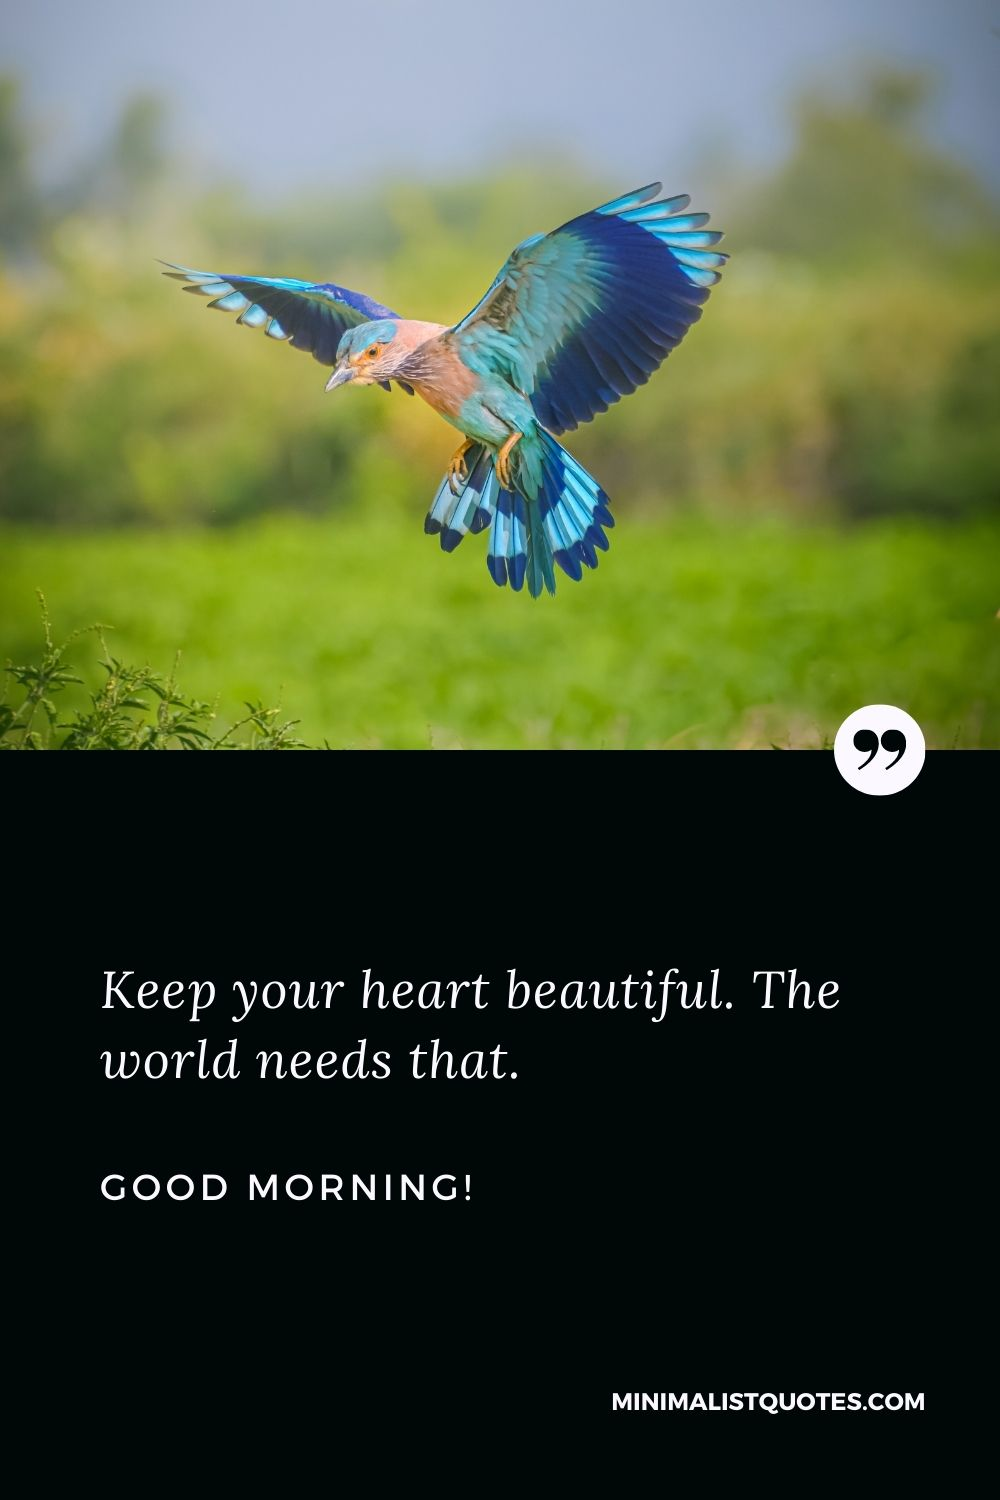 Beautiful good morning wishes: Keep your heart beautiful. The world needs that. Good Morning!